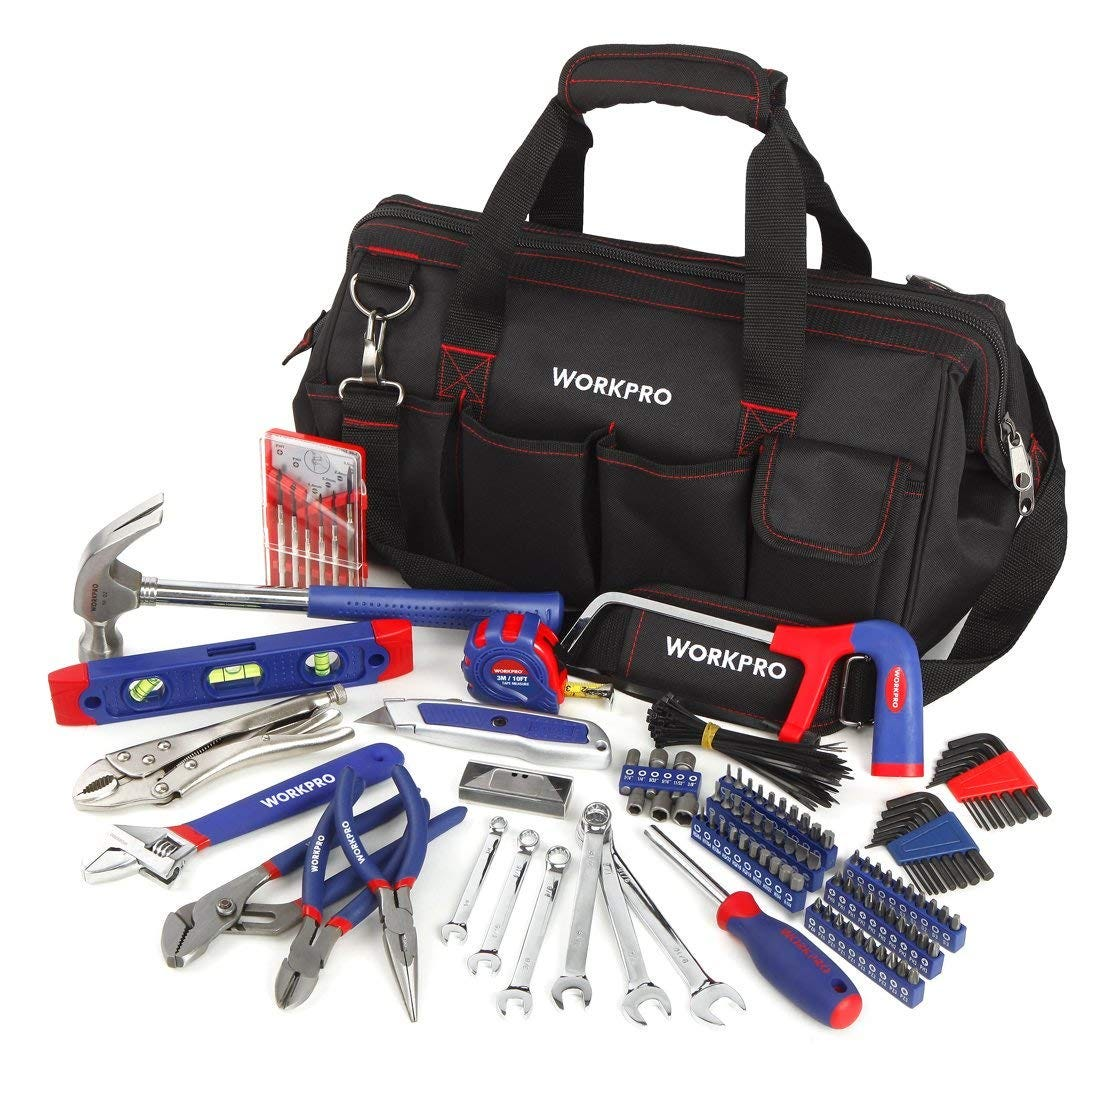 workpro, tool bag, tool set, all in one